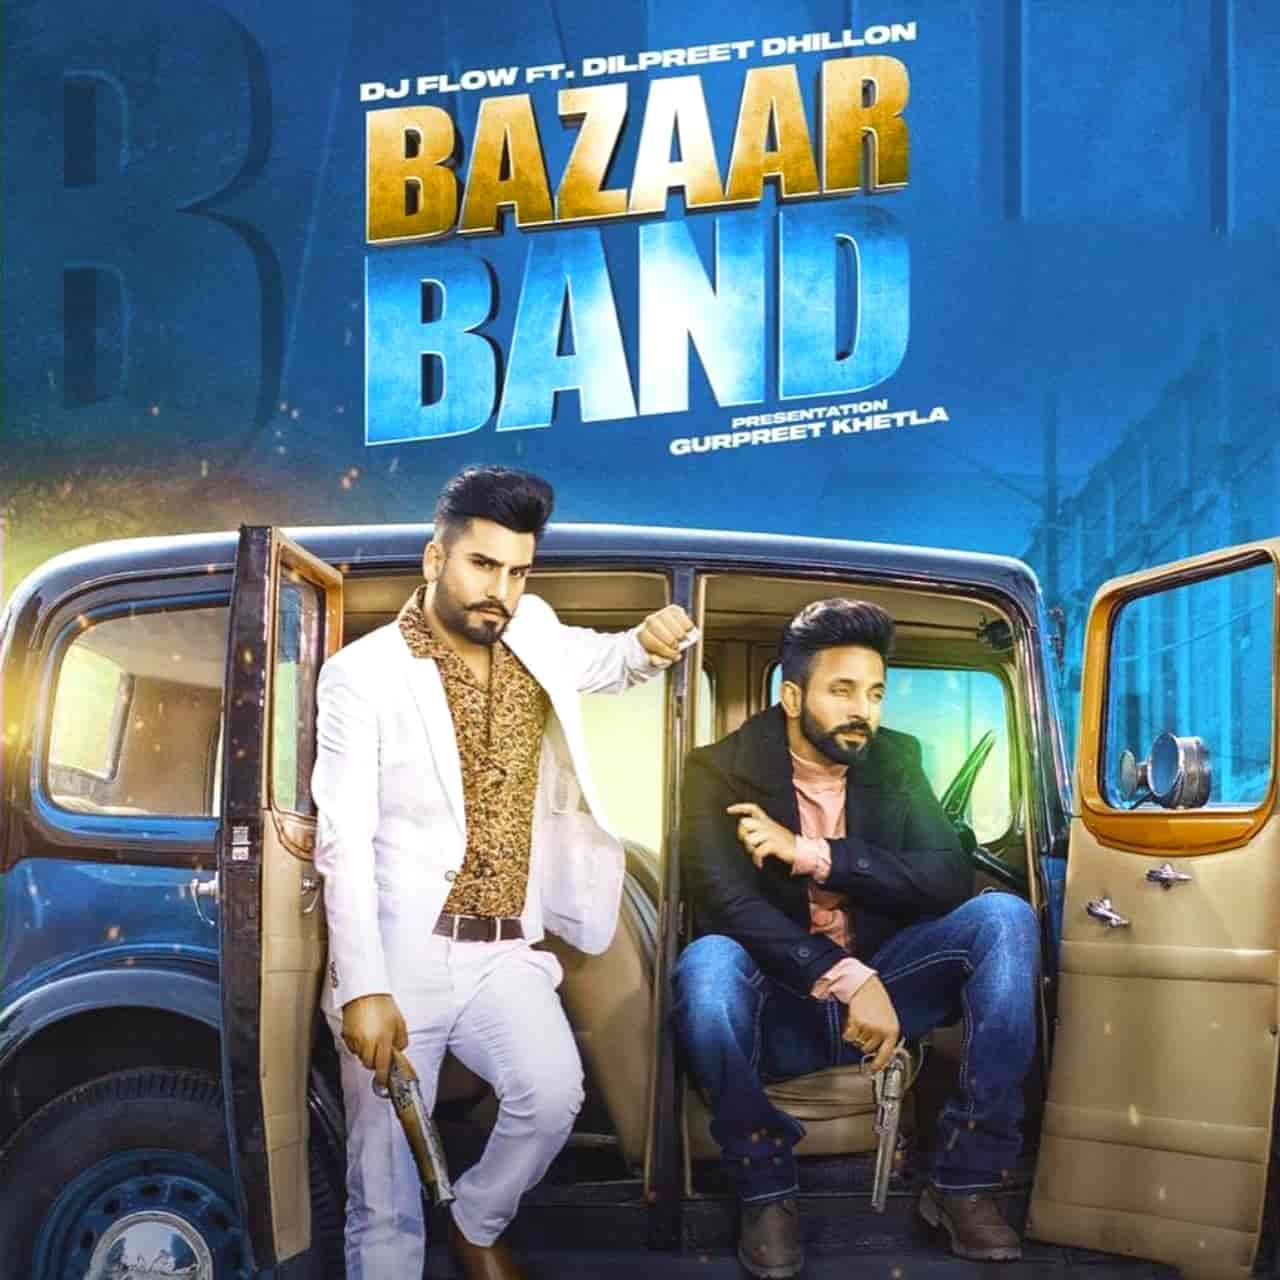 Bazaar Band Punjabi Song Image By Dilpreet Dhillon